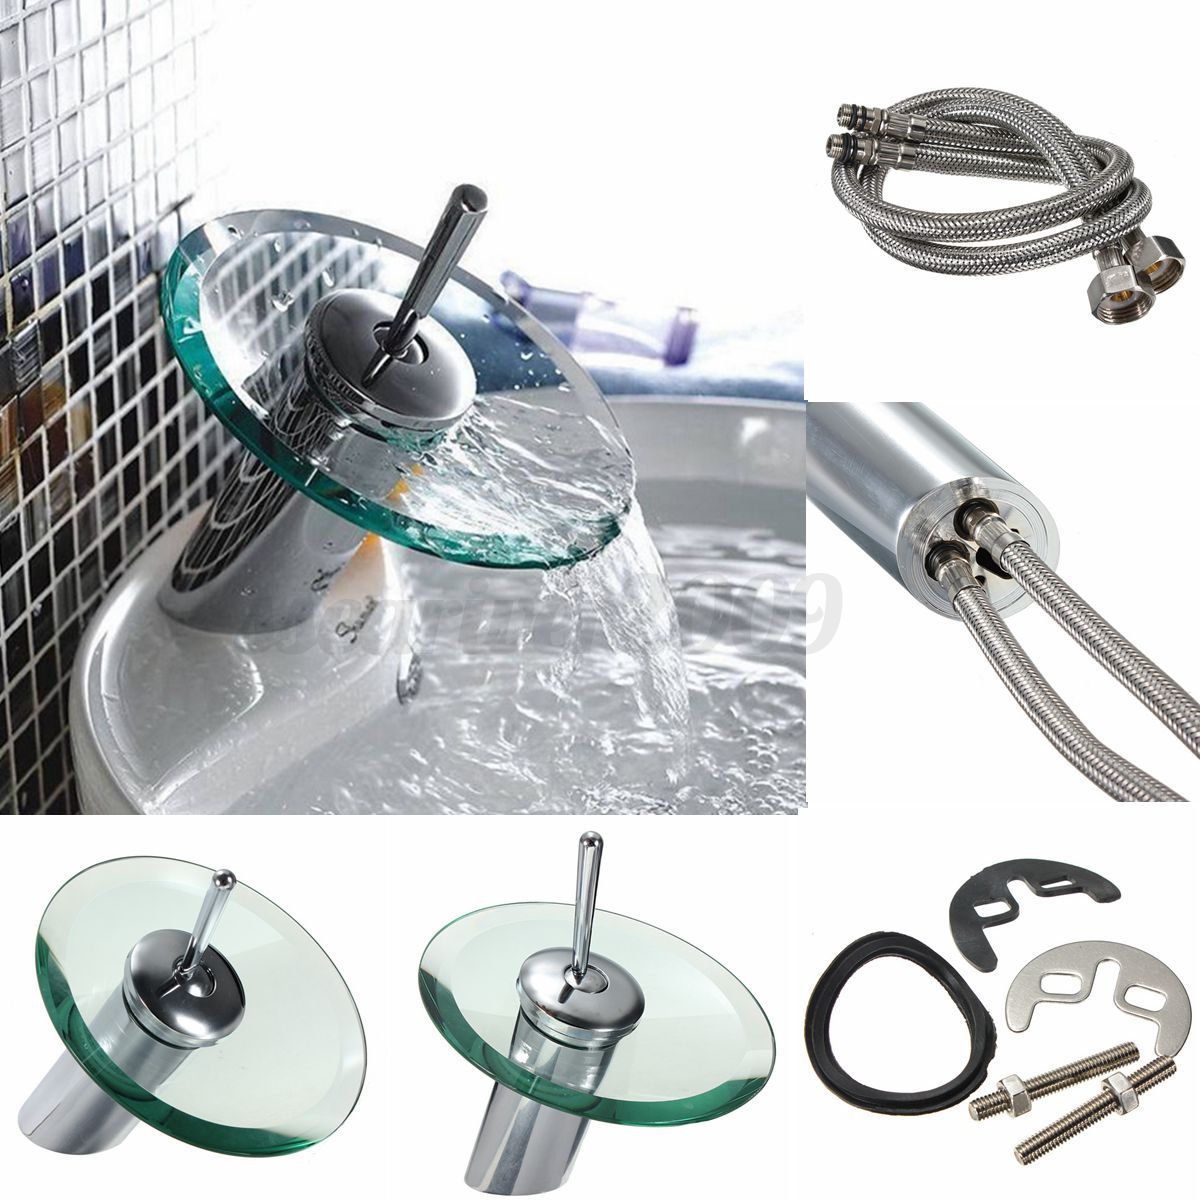 Bathroom Kitchen Sink Lever Mixer Tap Pull Out Swivel Spray Spout Faucet Ebay